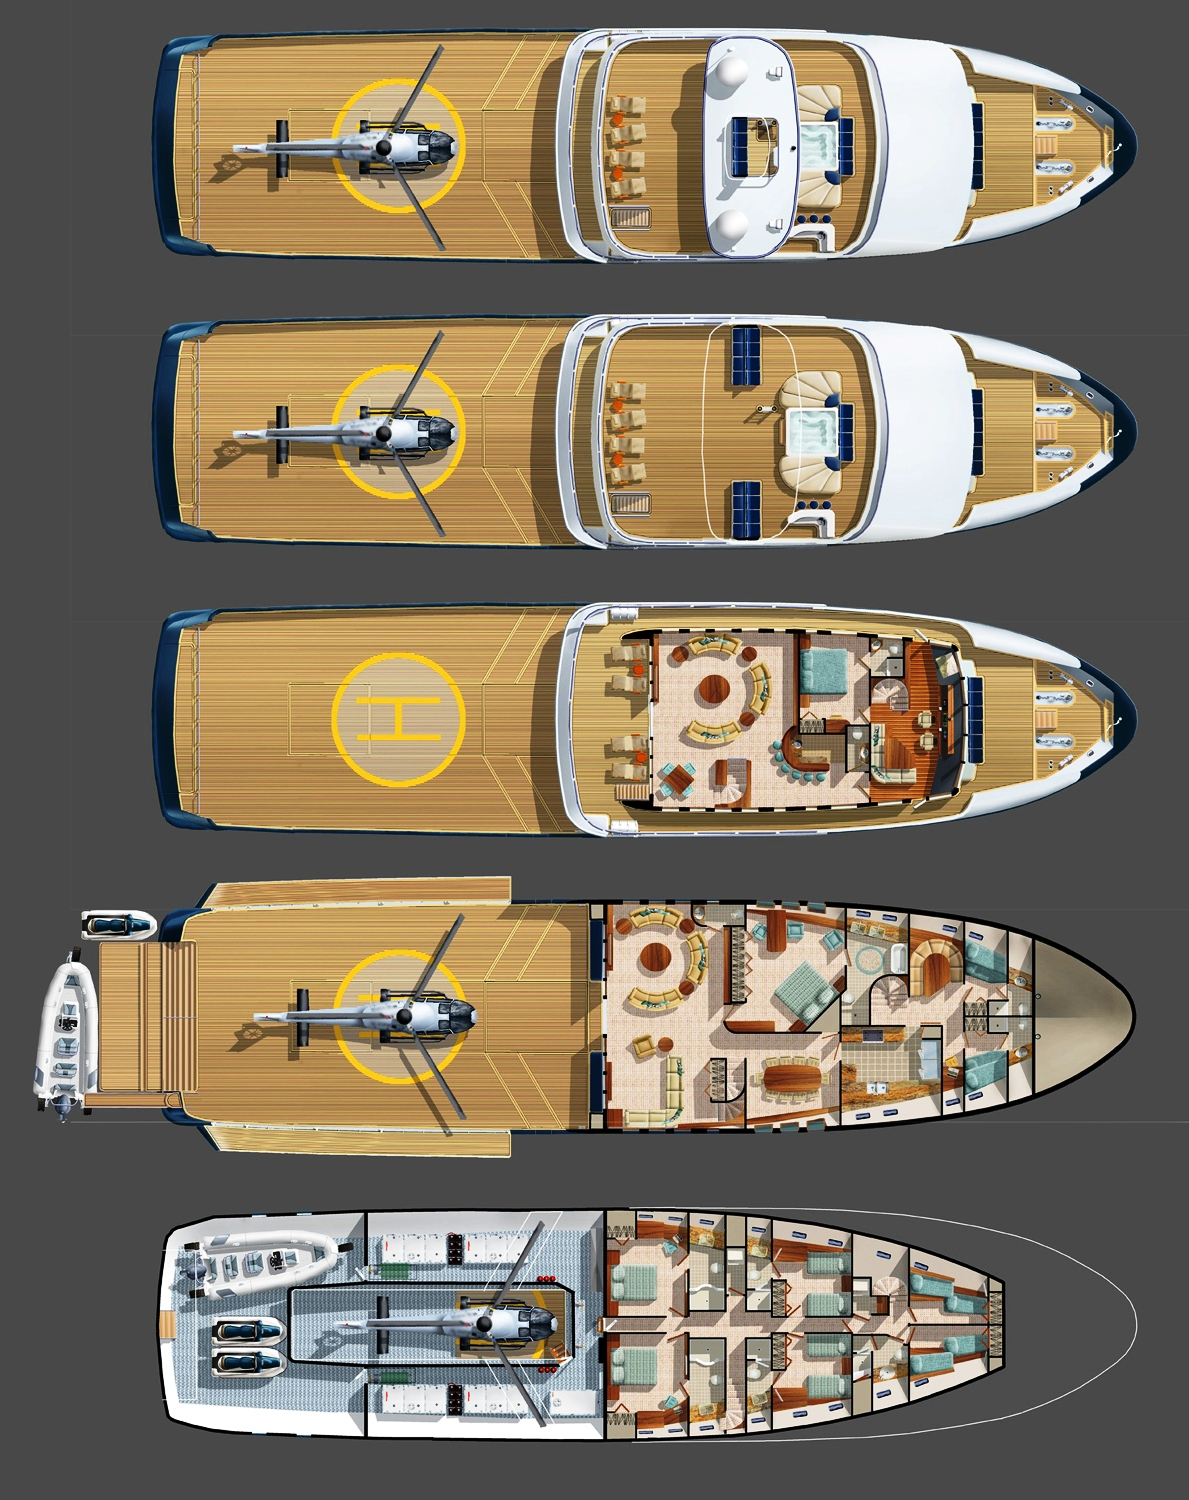 Blueprints and Floor Plans of Yachts - YachtForums.Com